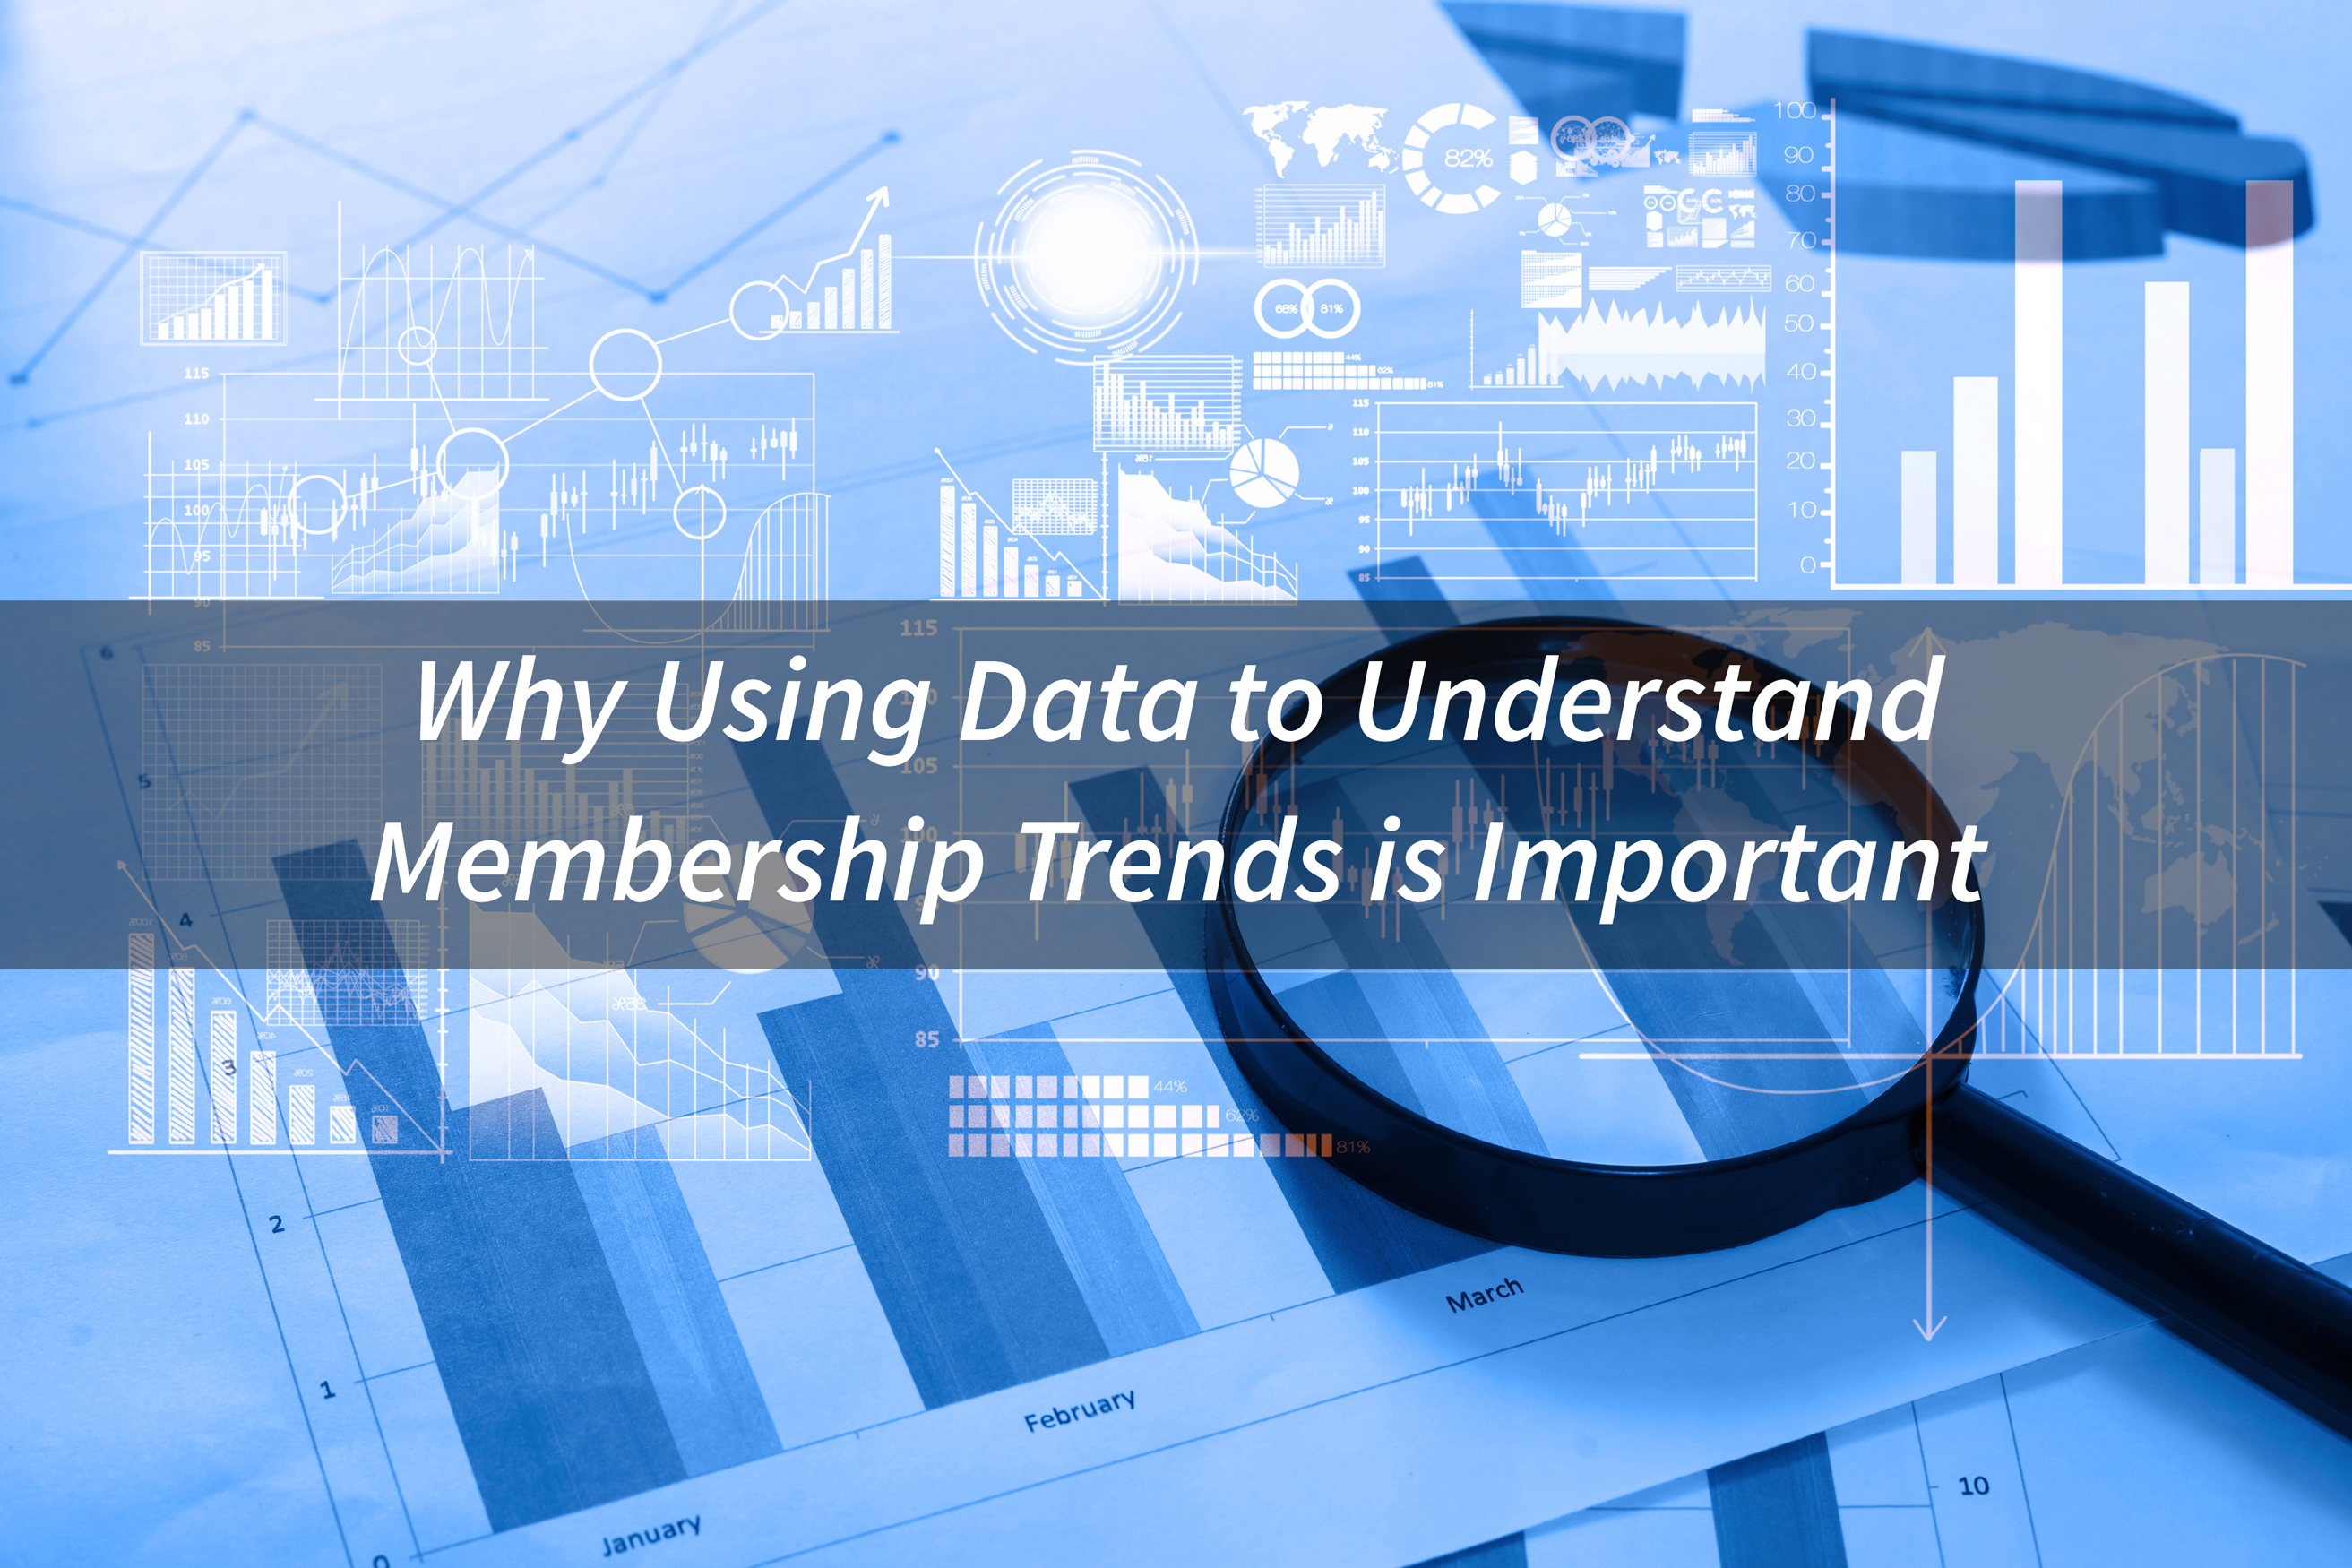 Why-Using-Data-to-Understand-Membership-Trends-is-Important